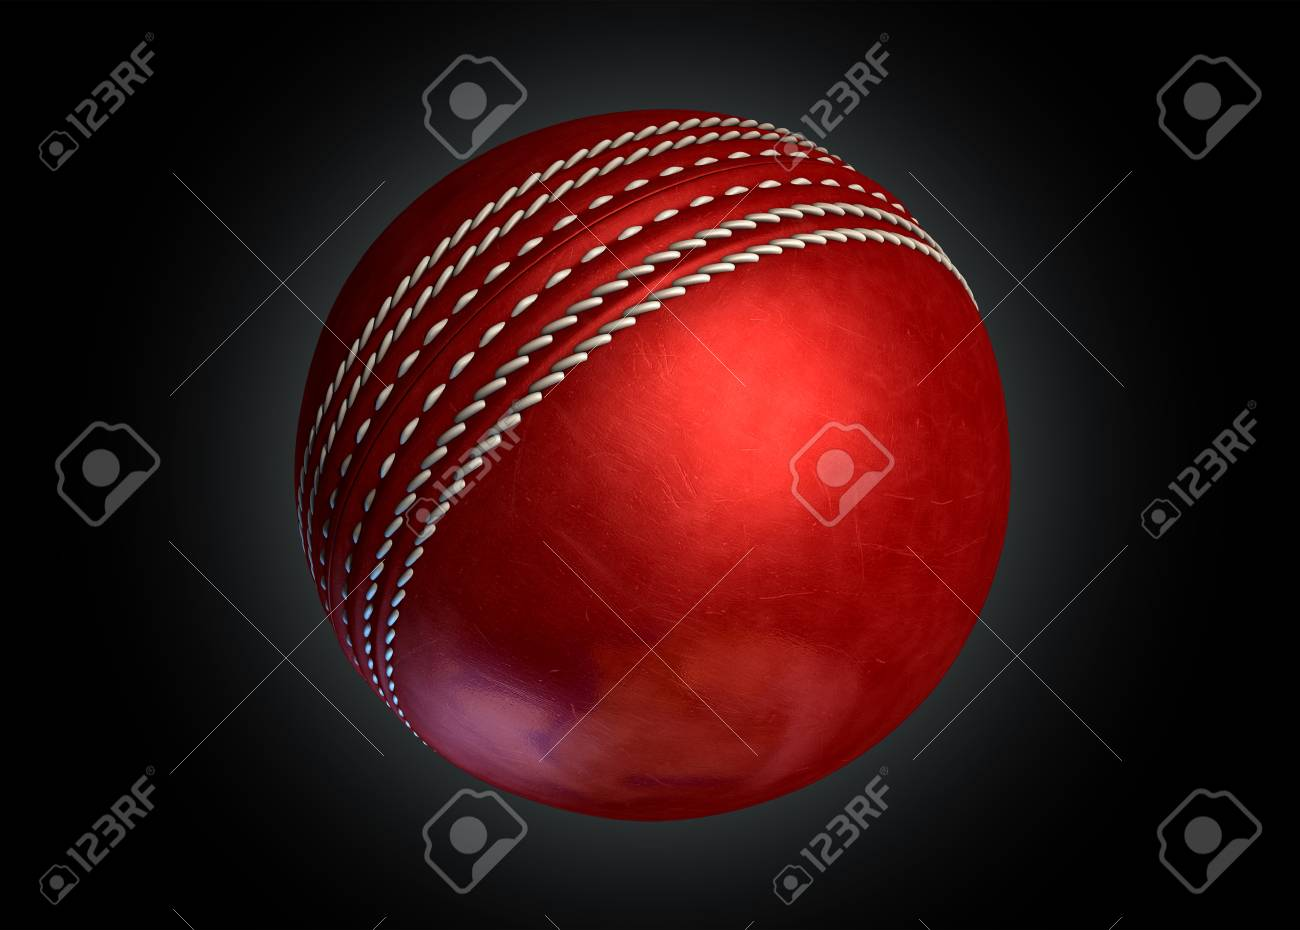 A Regular Red Leather Cricket Ball On An Isolated Dark Background 1300x930